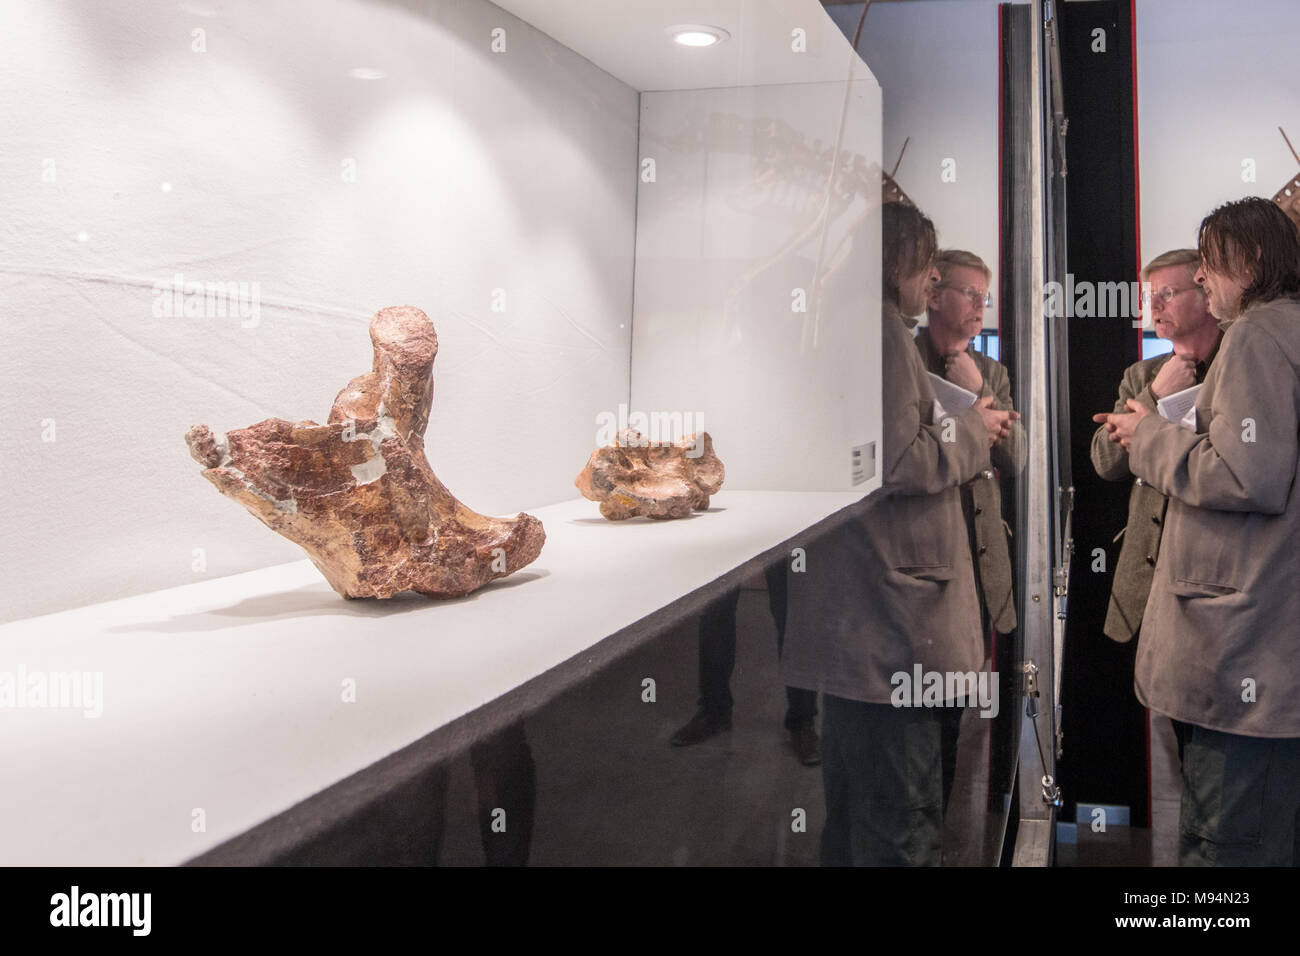 Denkendorf, Germany. 22 March 2018, Original bones of a 66 million year old huge flying dinosaur lying in a display case in the Dinosaur Museum. The most probably biggest discovered flying dinosaur with a twelve metre wing-span and weighing half a ton is being presented on Thursday. Photo: Armin Weigel/dpa Credit: dpa picture alliance/Alamy Live News - Stock Image